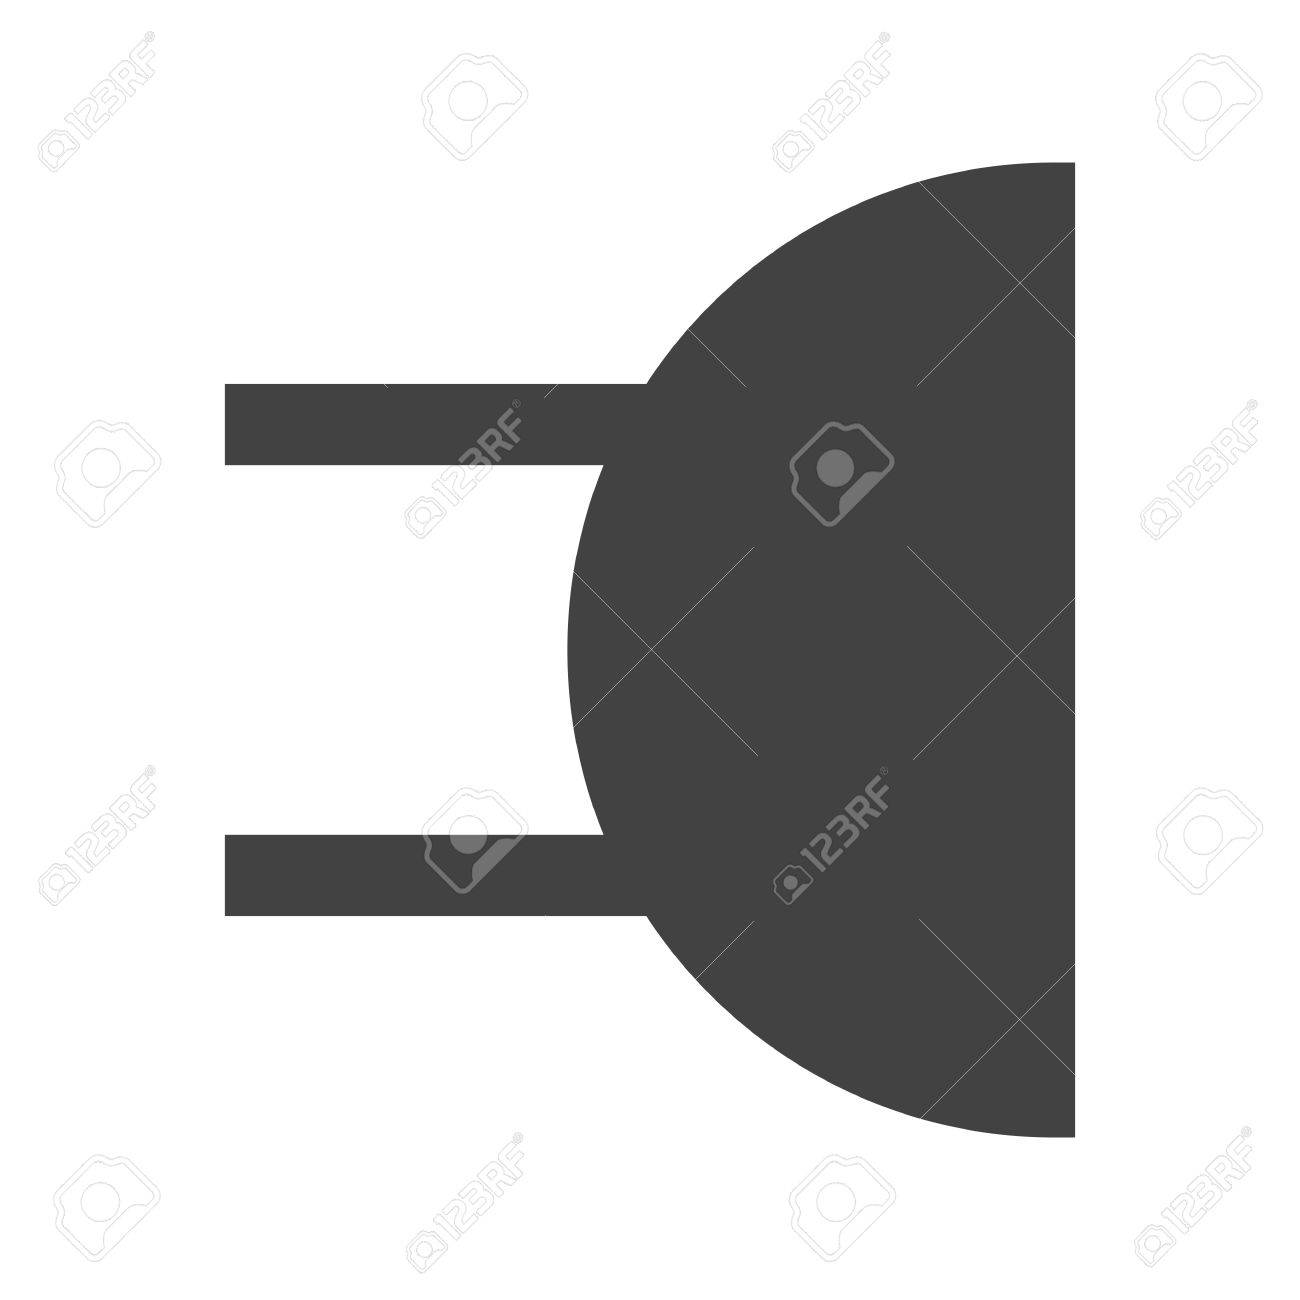 Fancy Buzzer Symbol In A Circuit Image Collection - Everything You ...